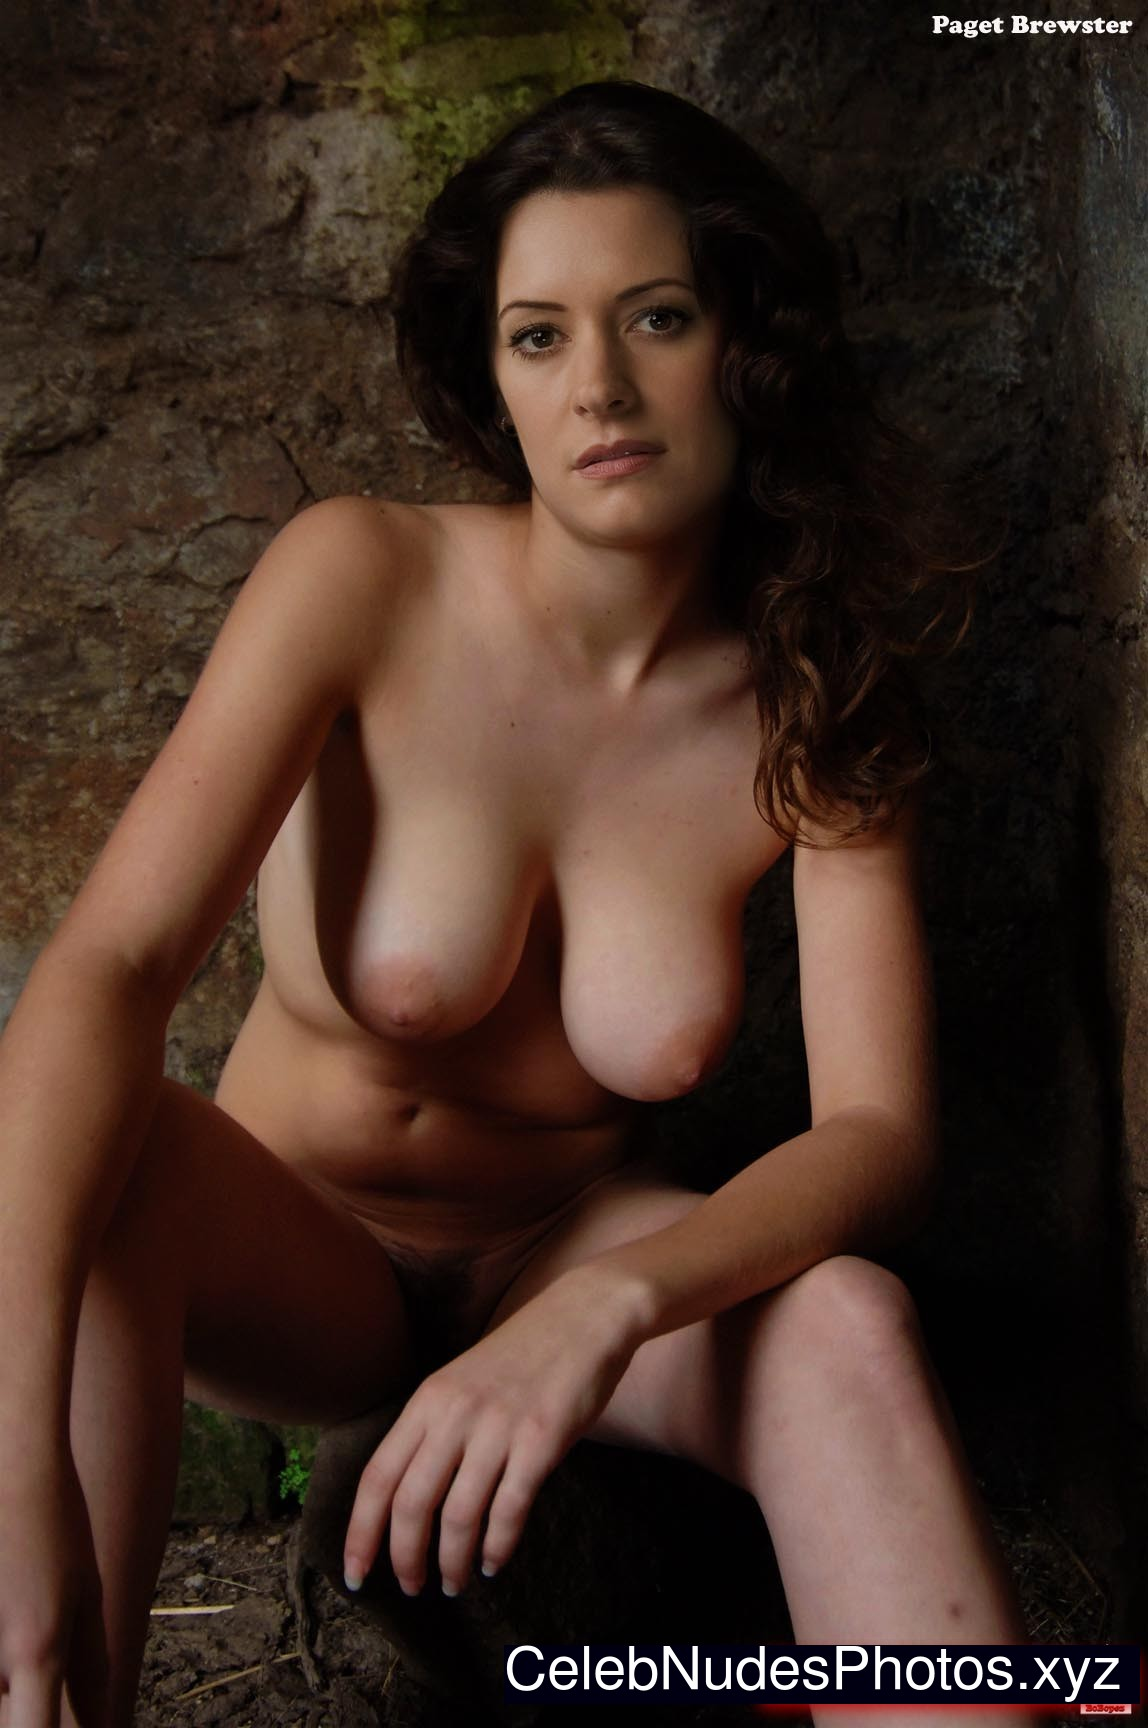 paget brewster nude pictures